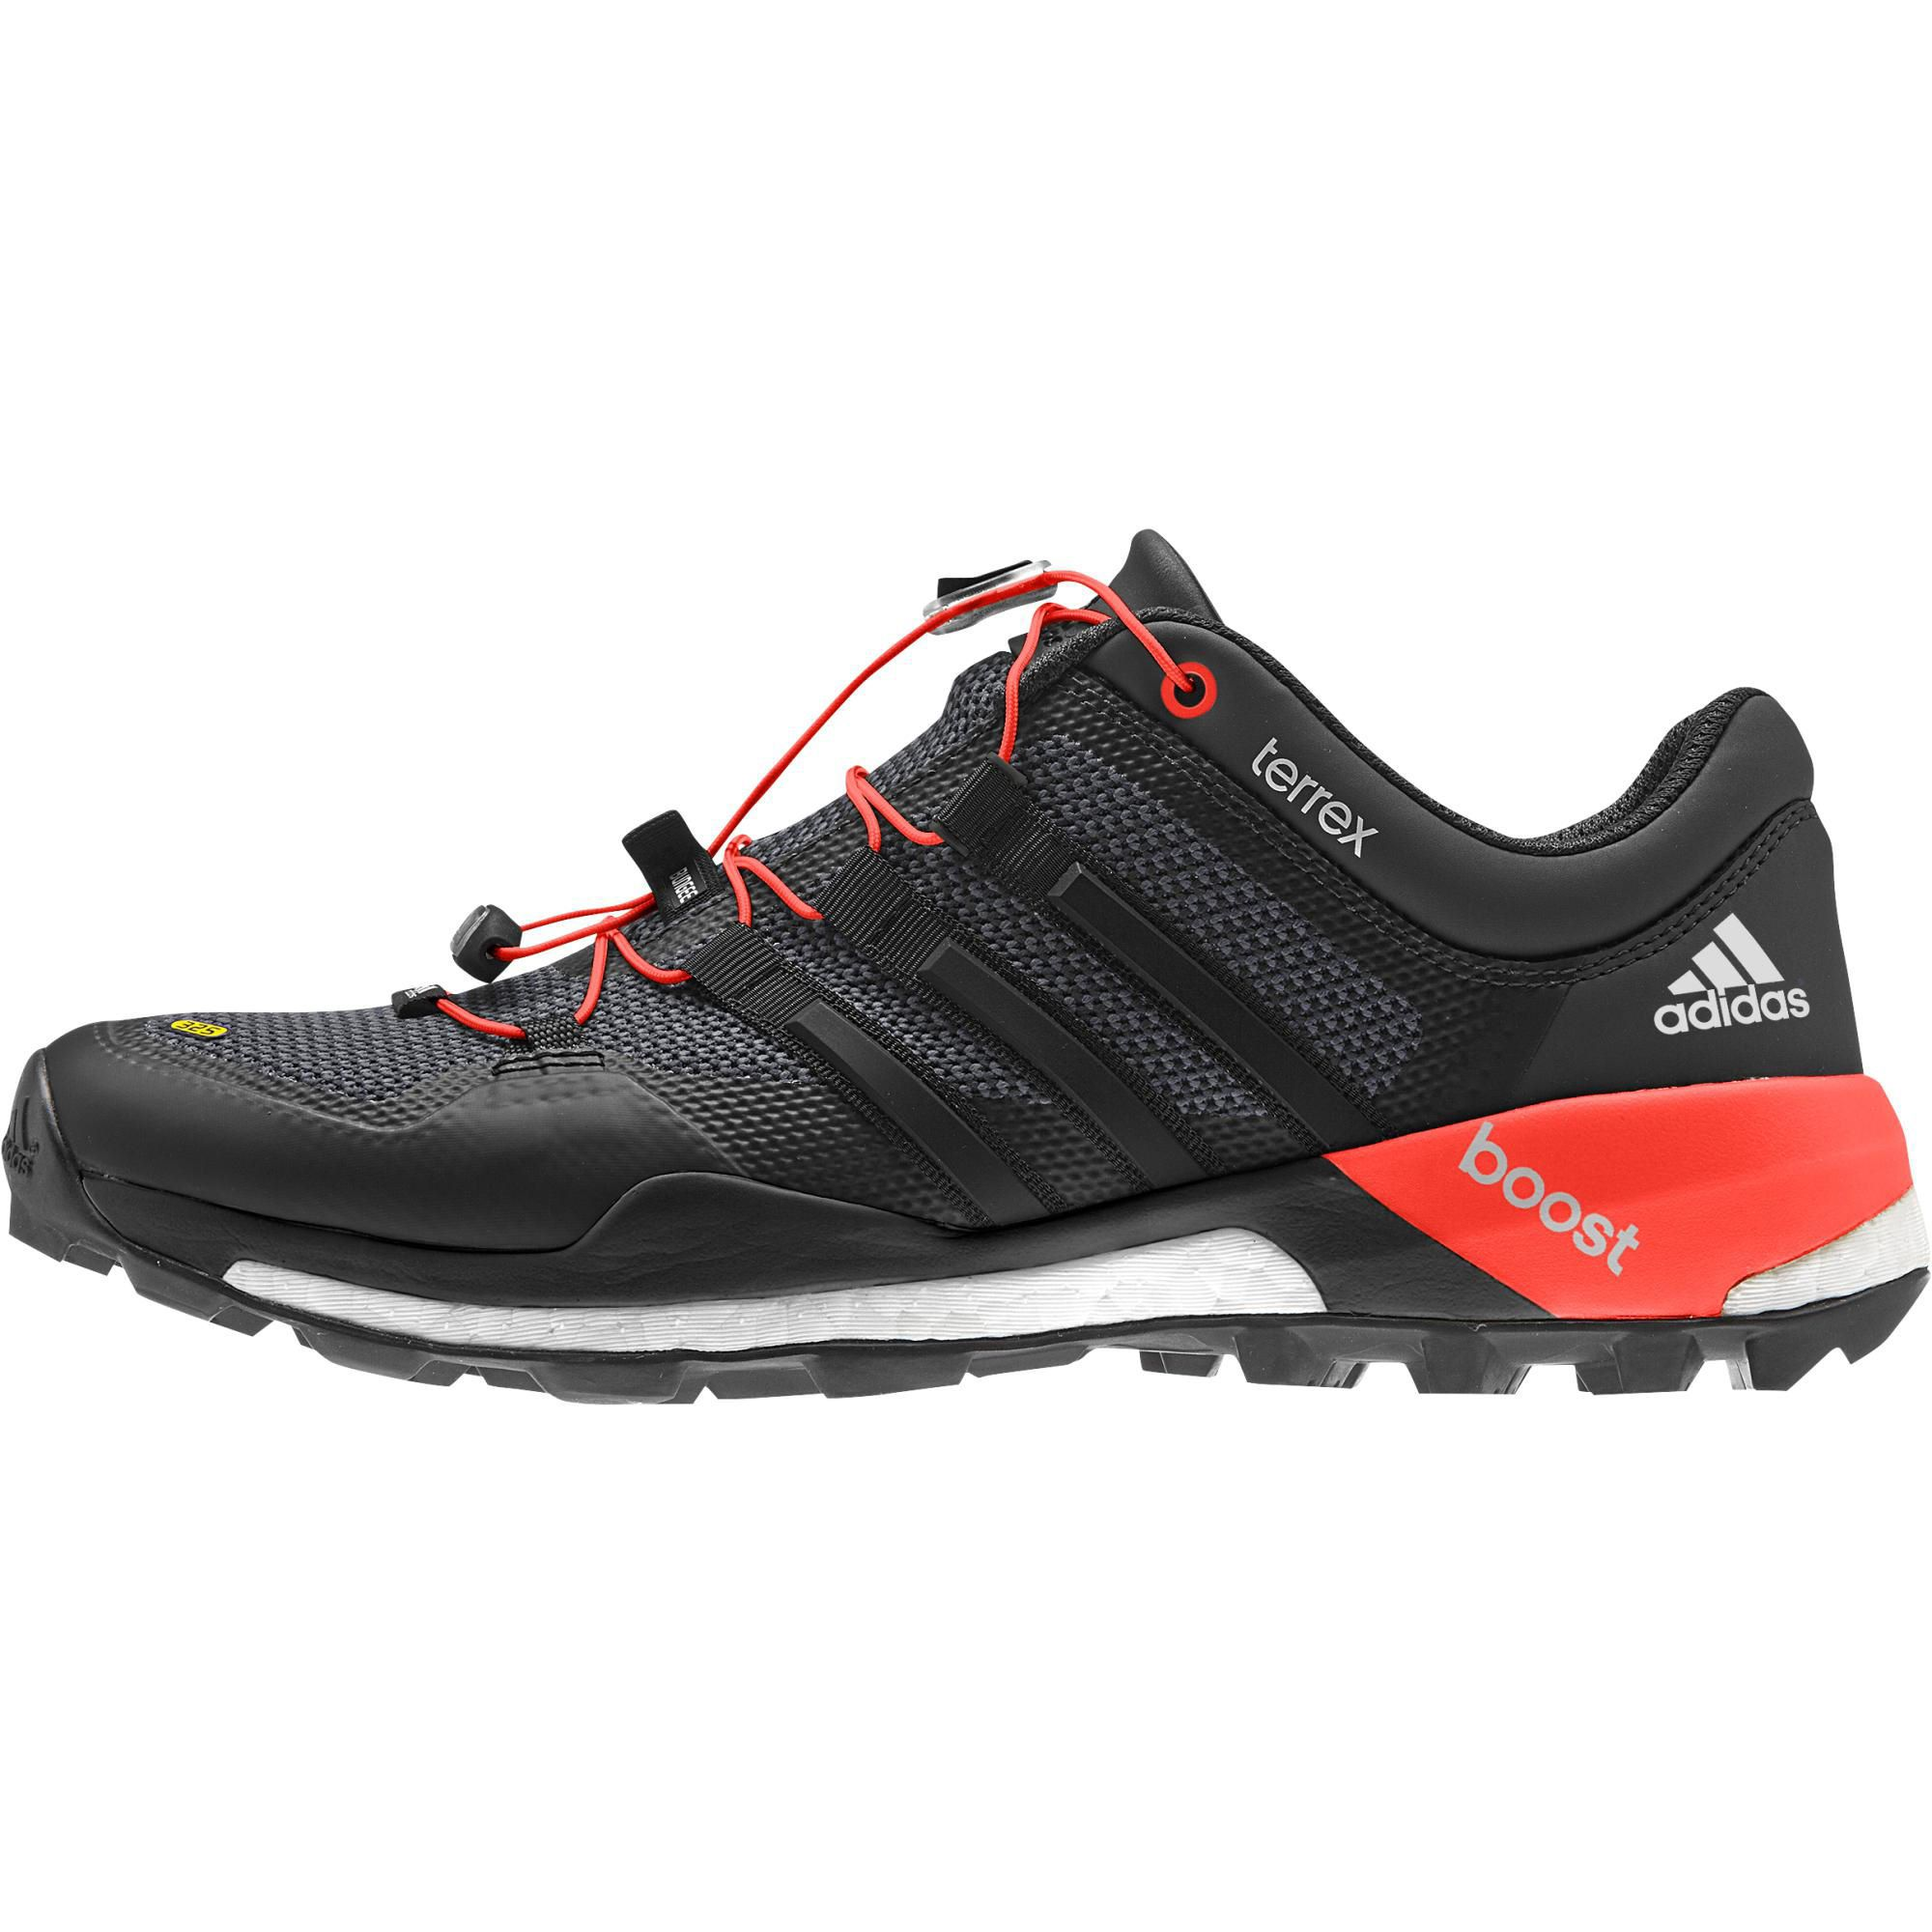 Adidas-Terrex-Boost-Shoes-AW15-Offroad-Running-Shoes-